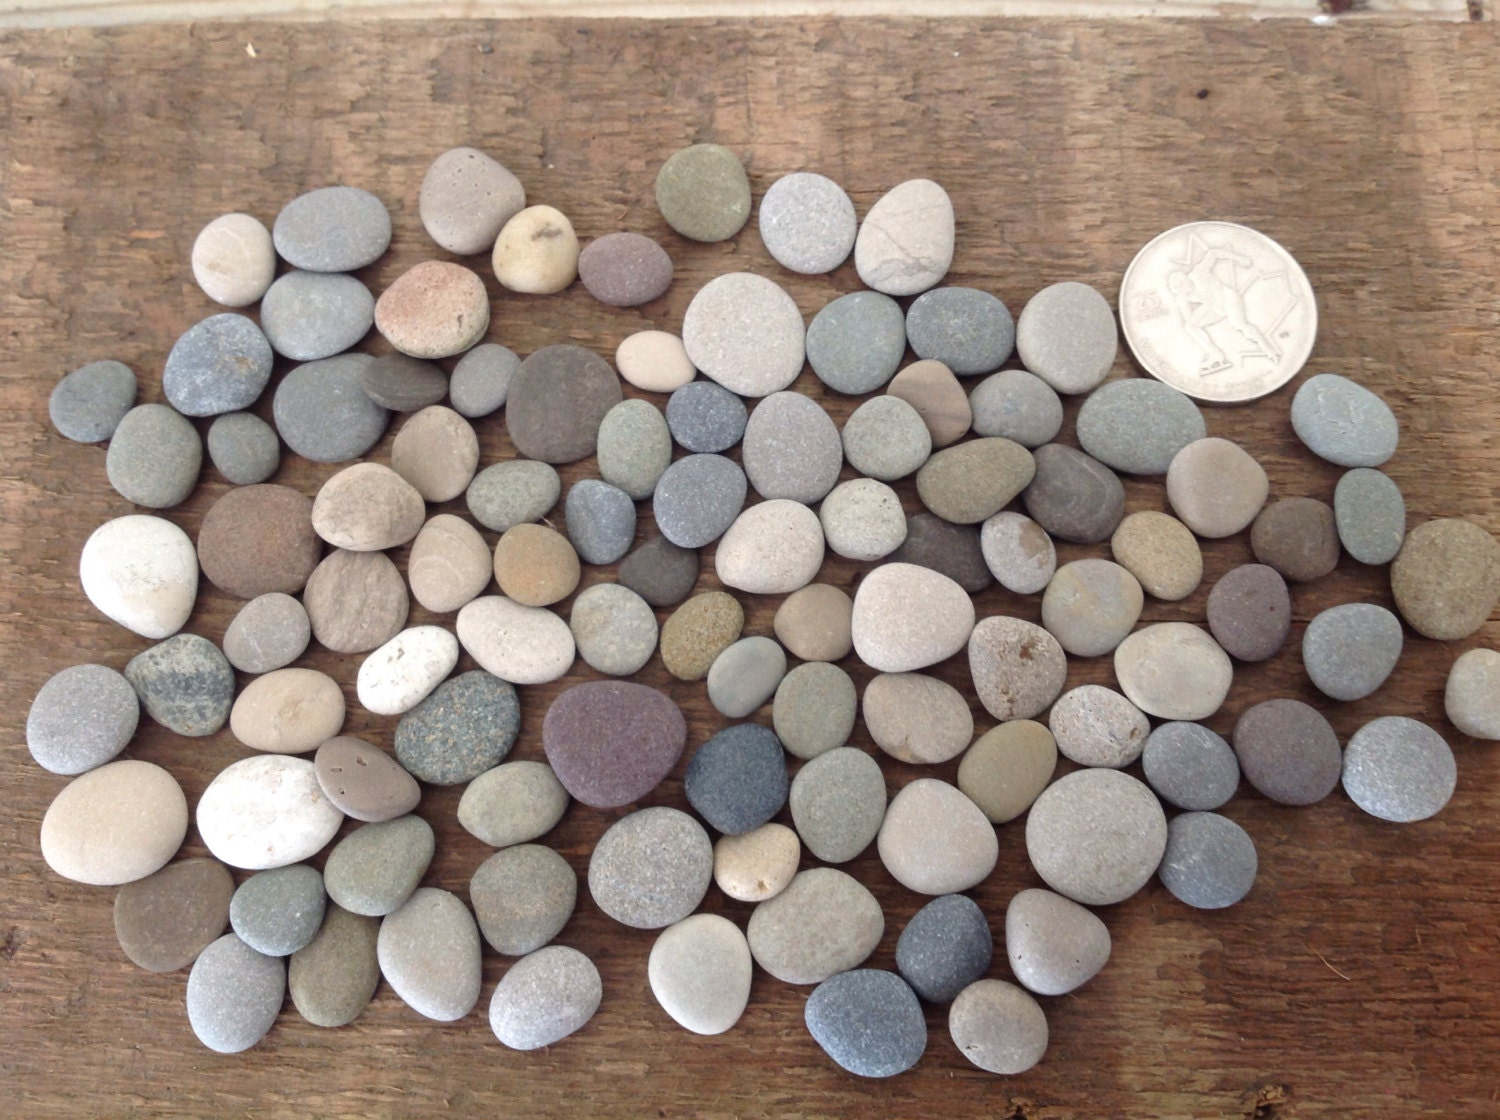 200 Tiny Round Beach Stones Mosaic Supplies Mosaic Crafts